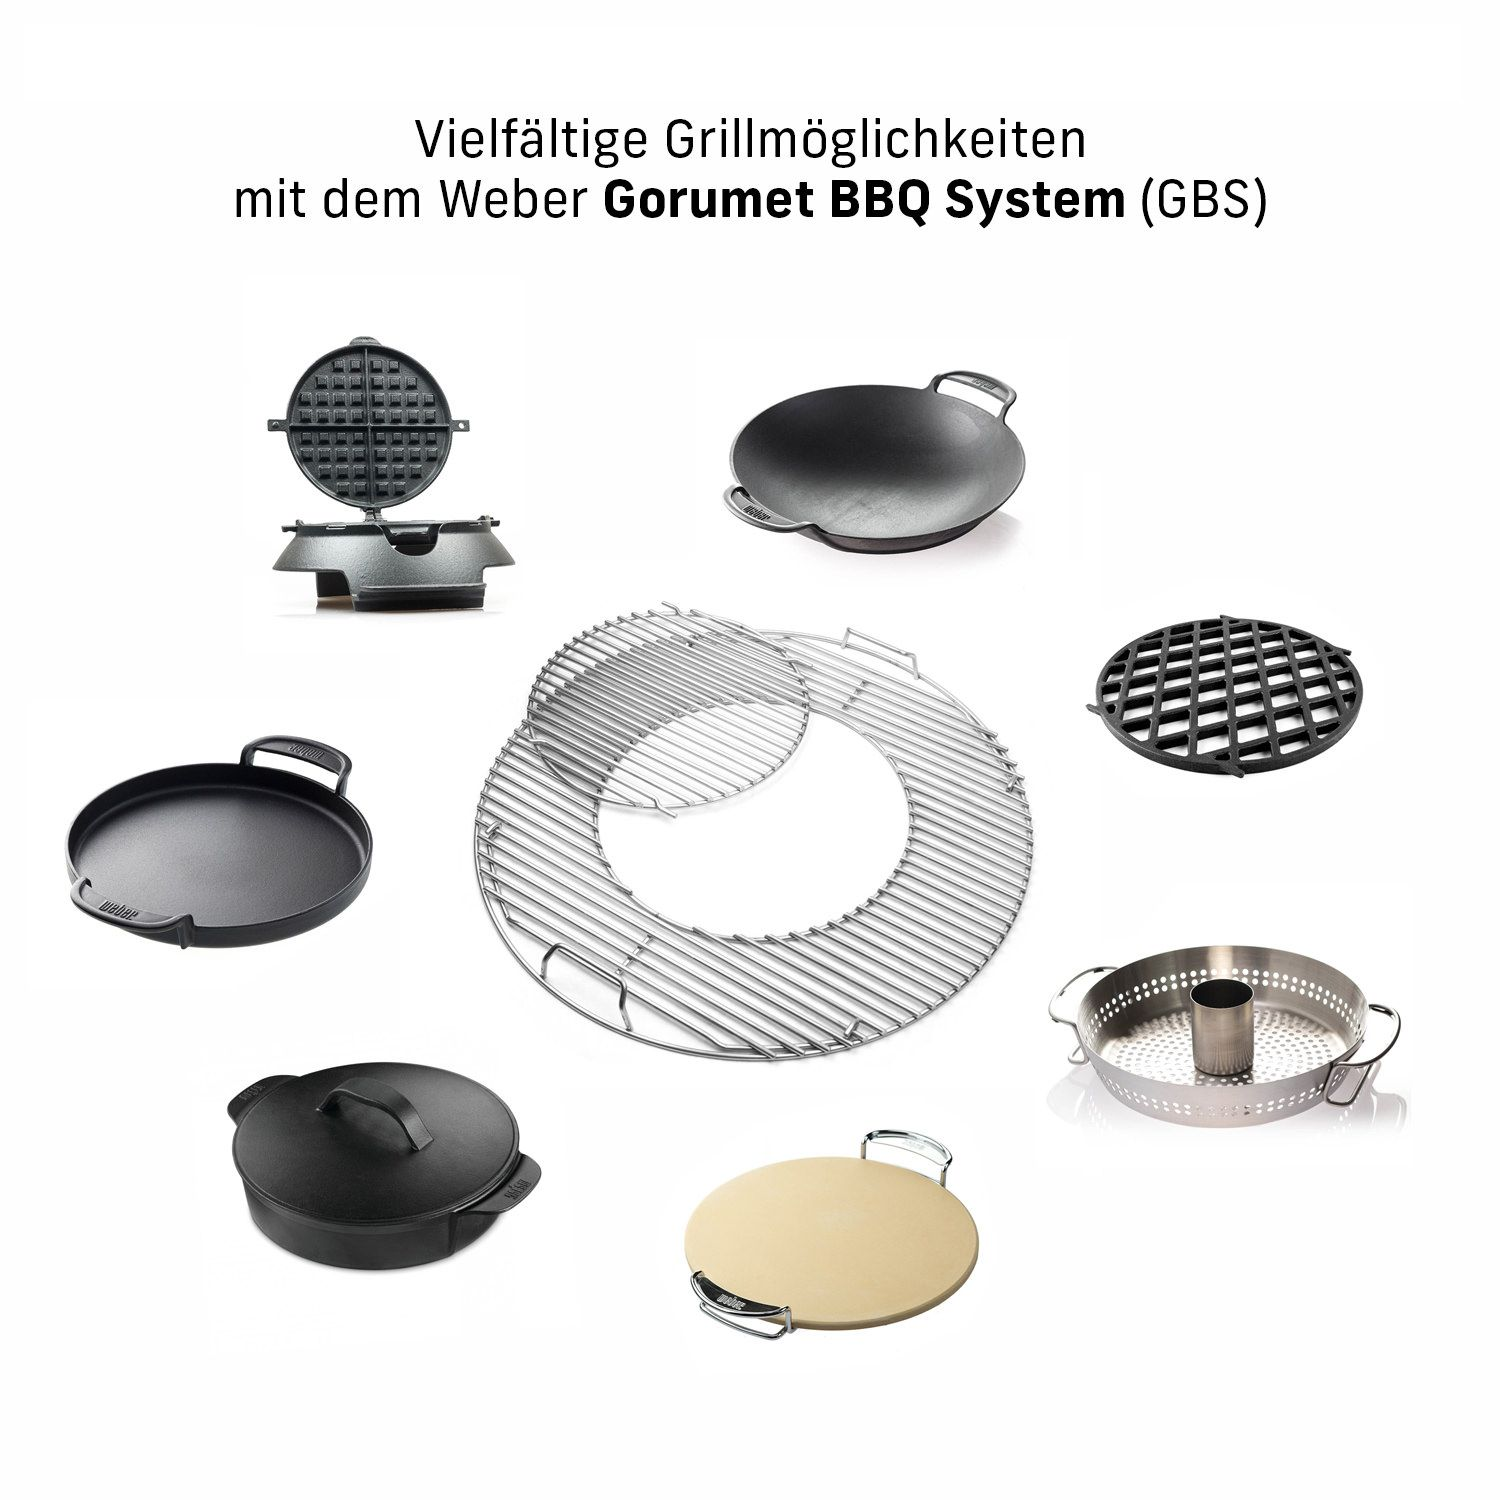 weber edelstahl grillrost 8843 gourmet bbq system ebay. Black Bedroom Furniture Sets. Home Design Ideas